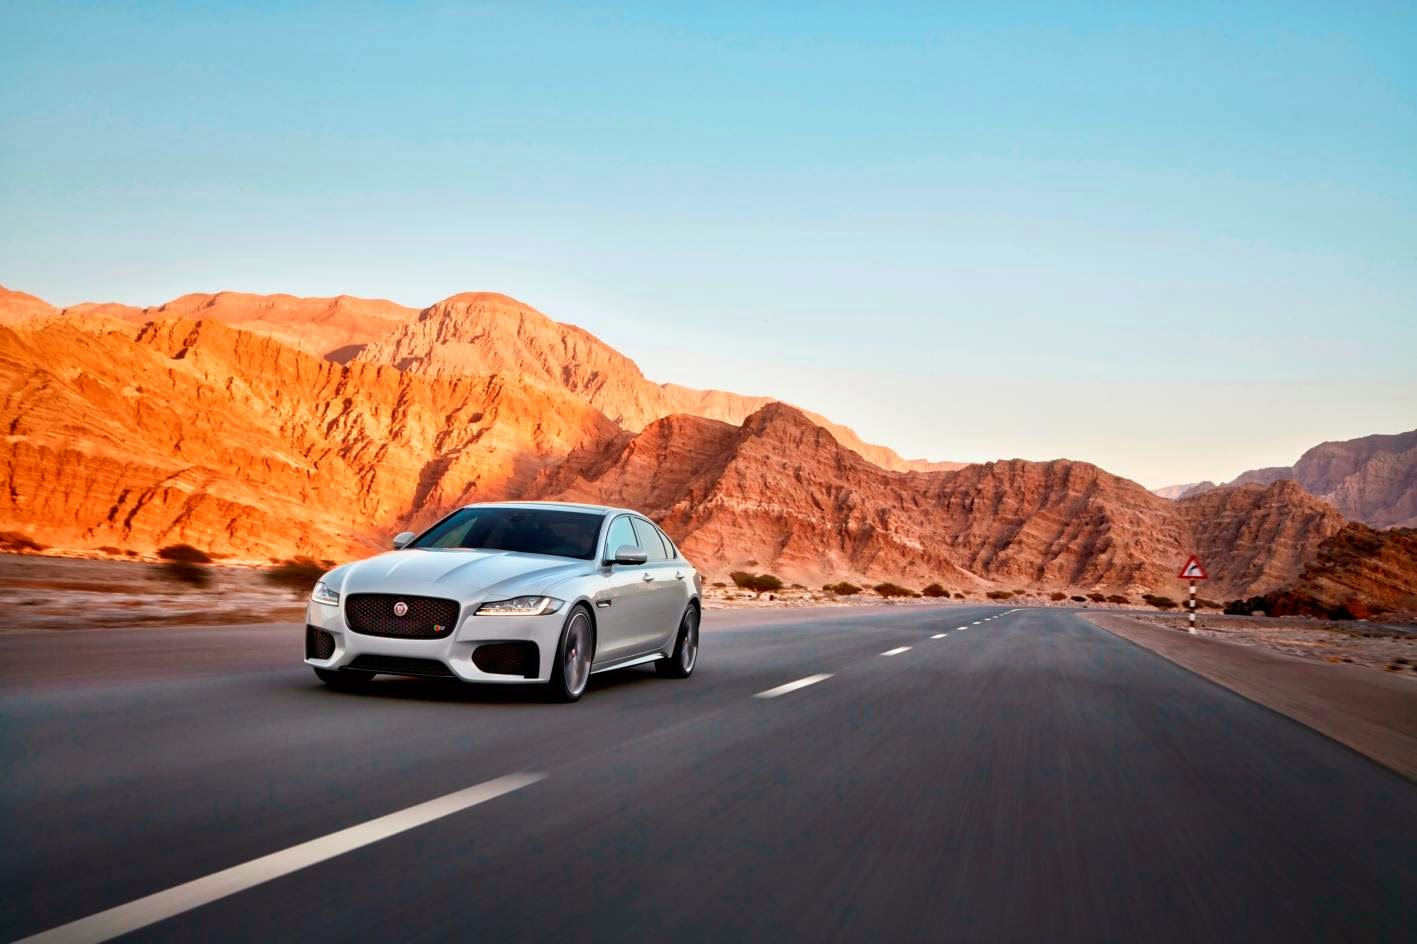 New Jaguar XF moving